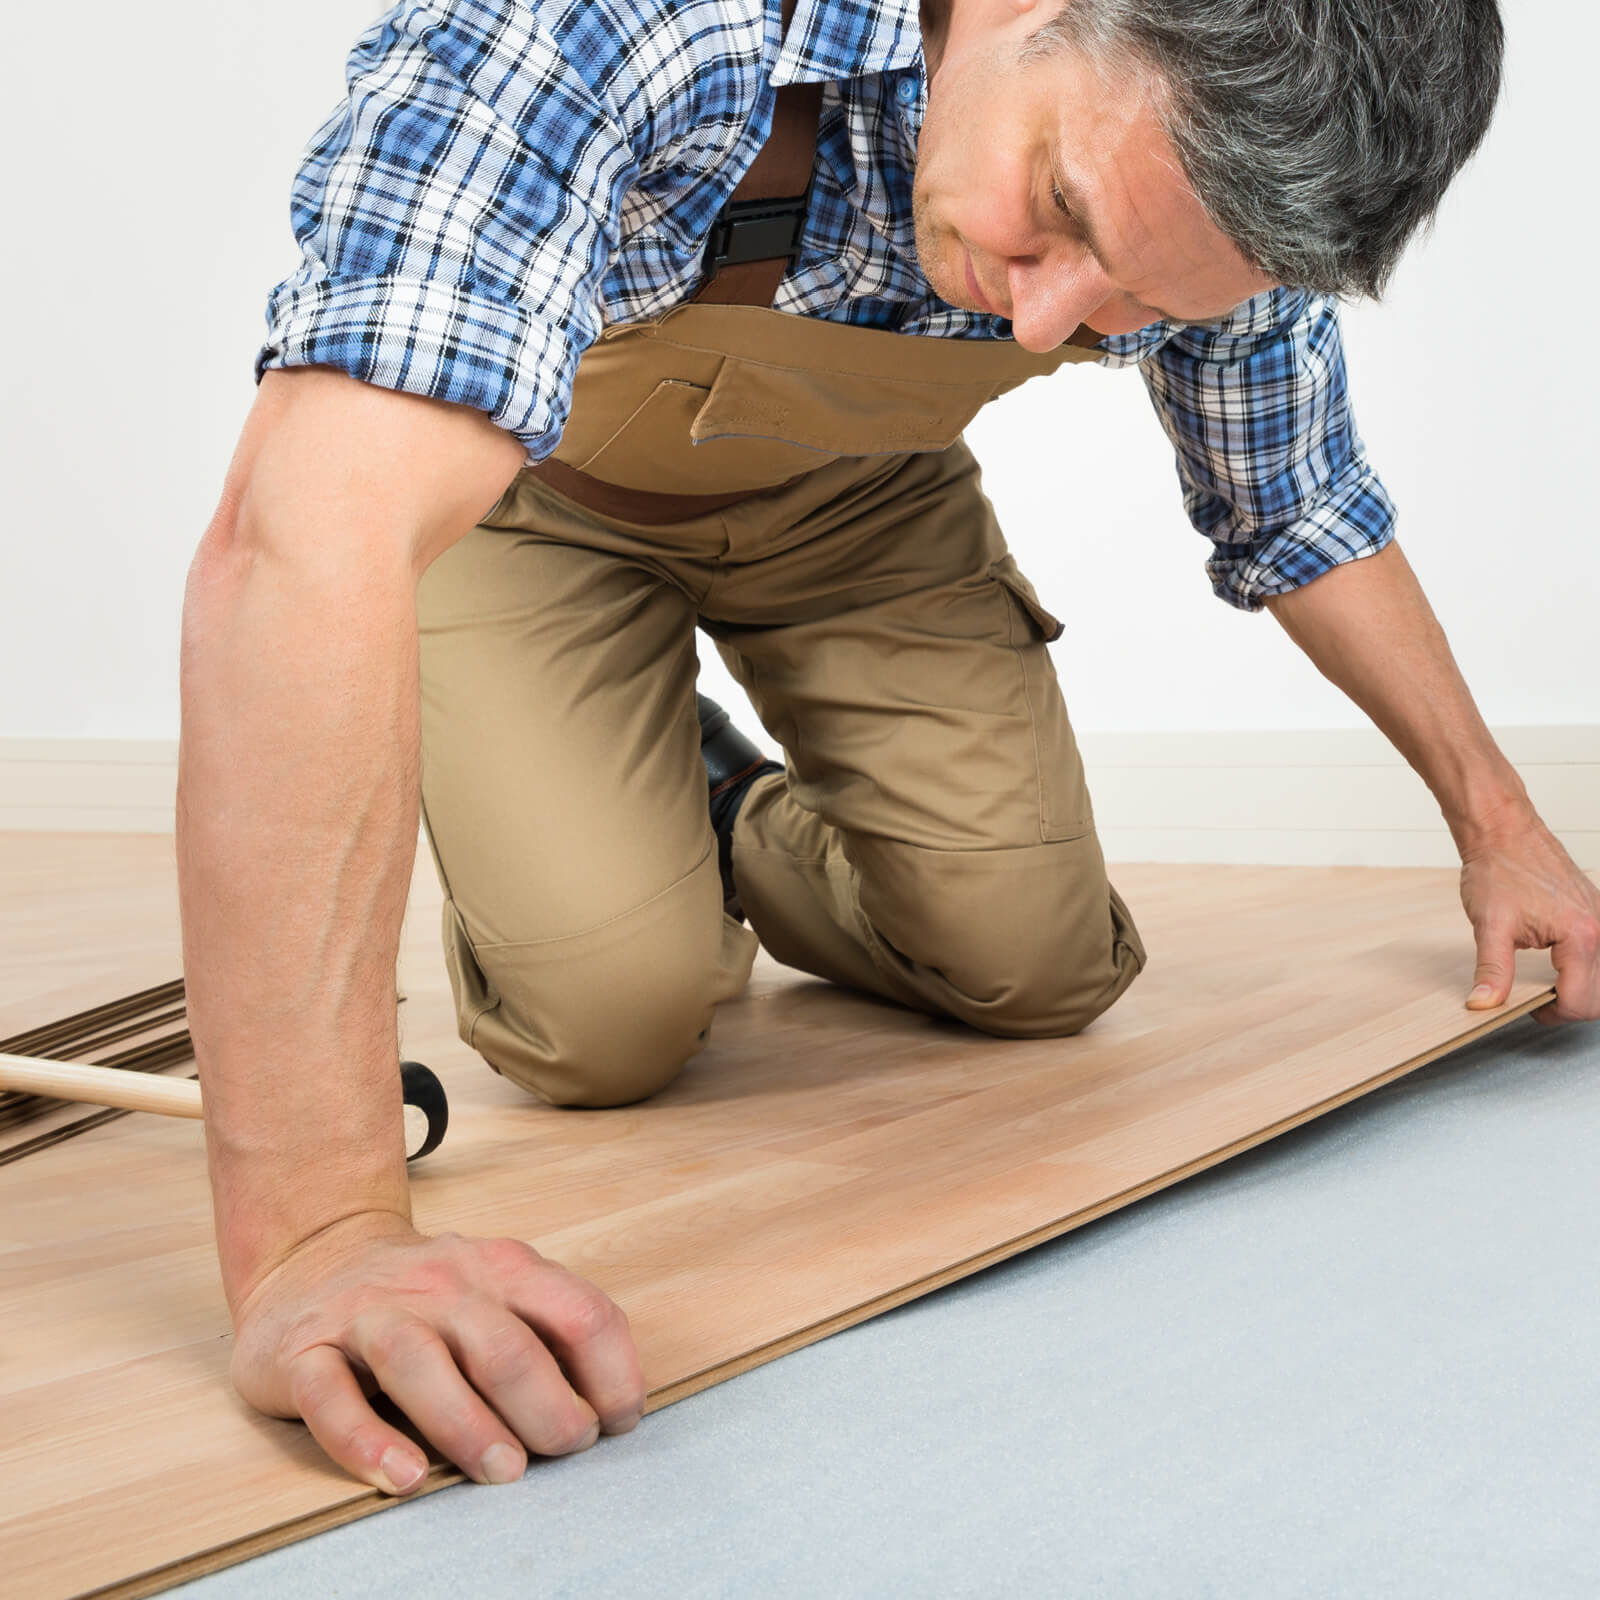 Laminate installation | McCool's Flooring